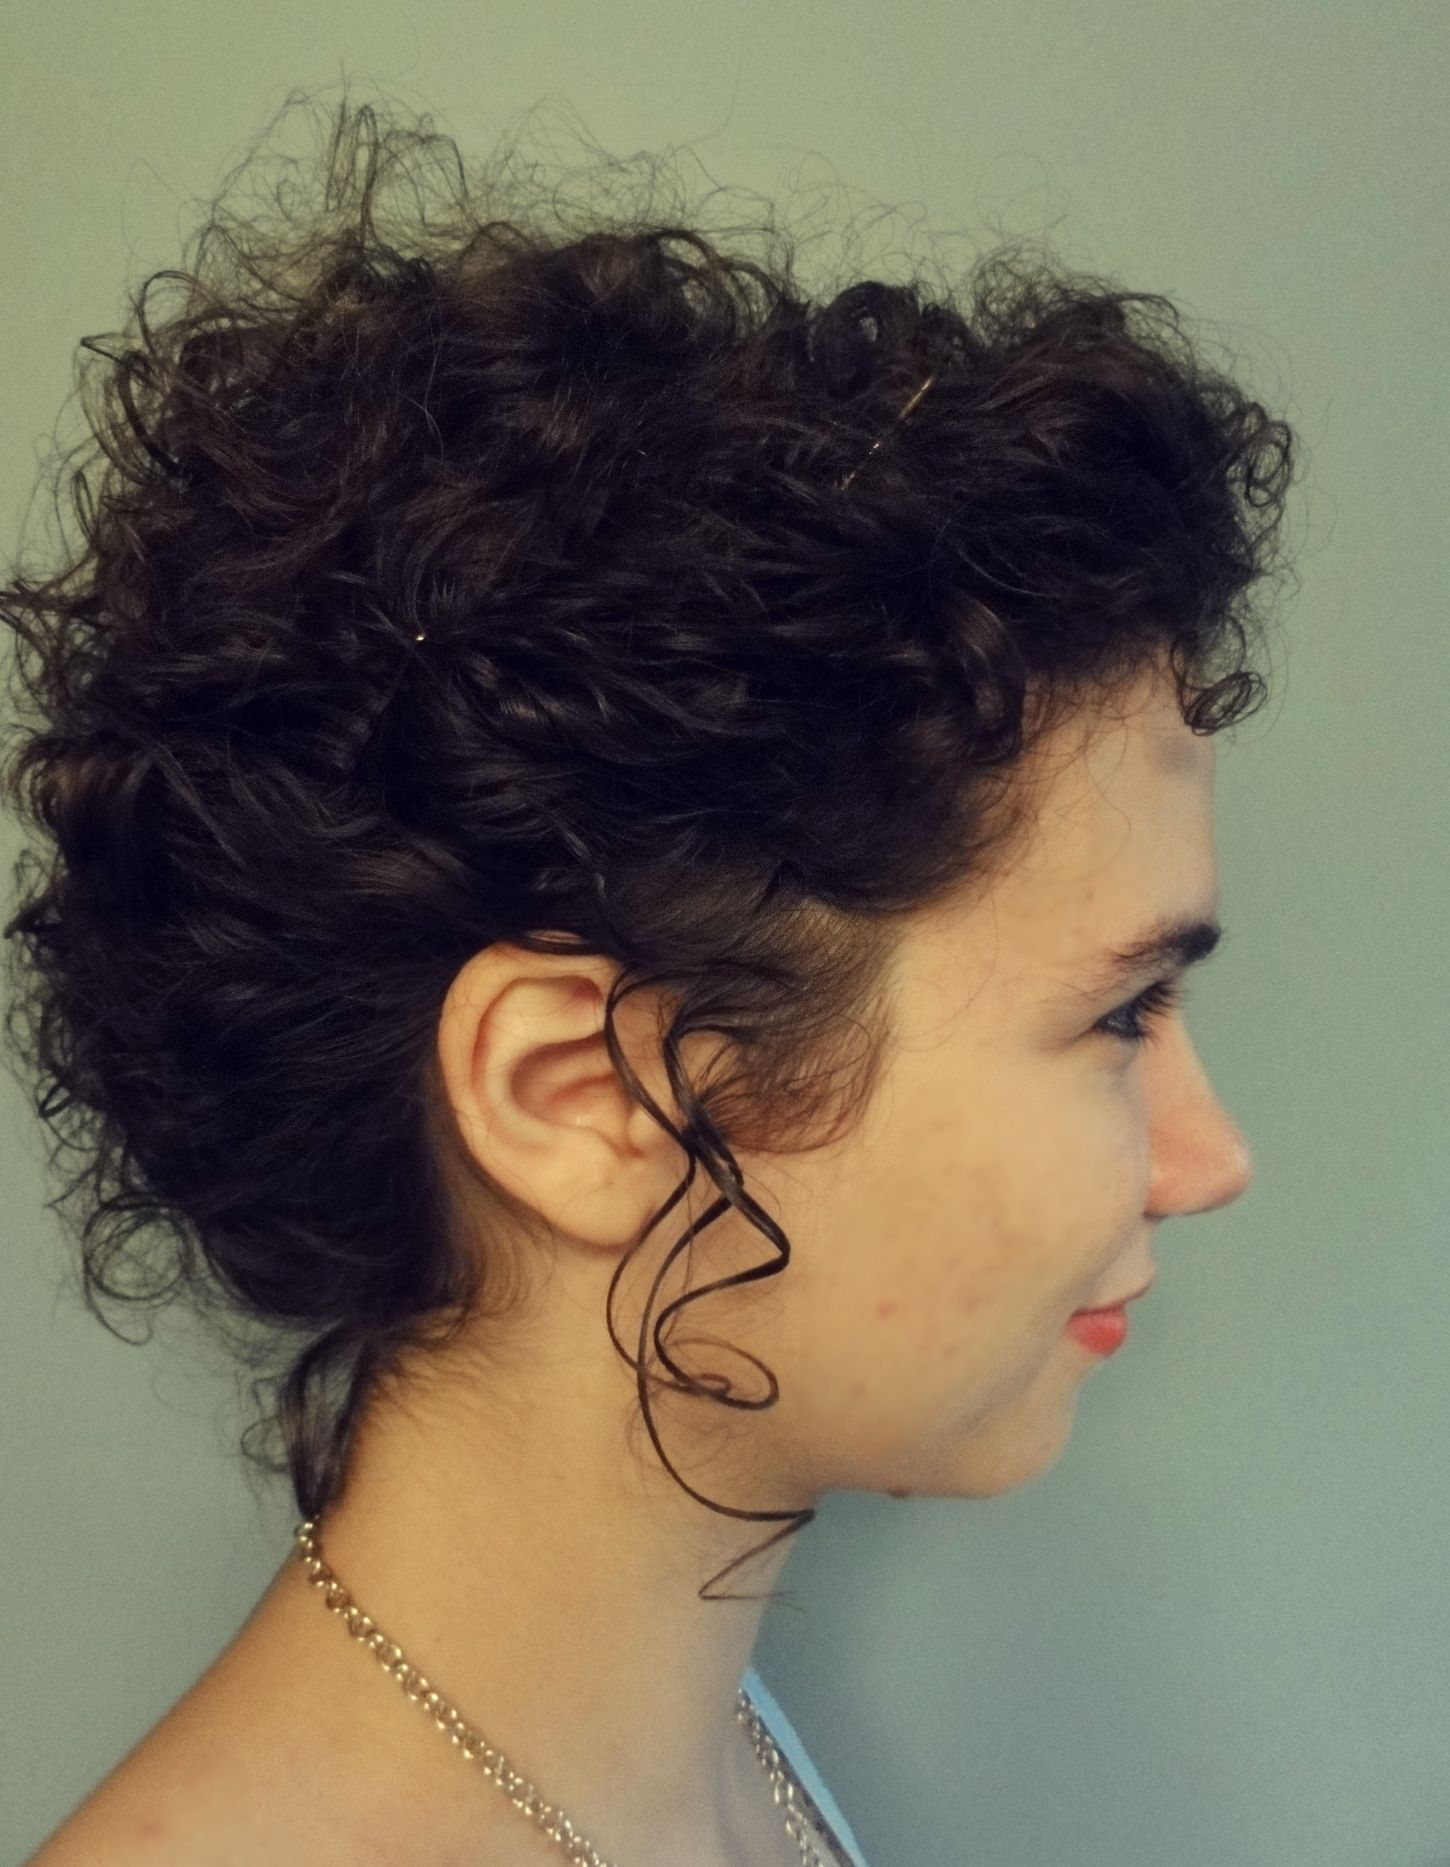 Love Your Curls Curly Hair Up Curly Hair Styles Short Curly Hair Updo